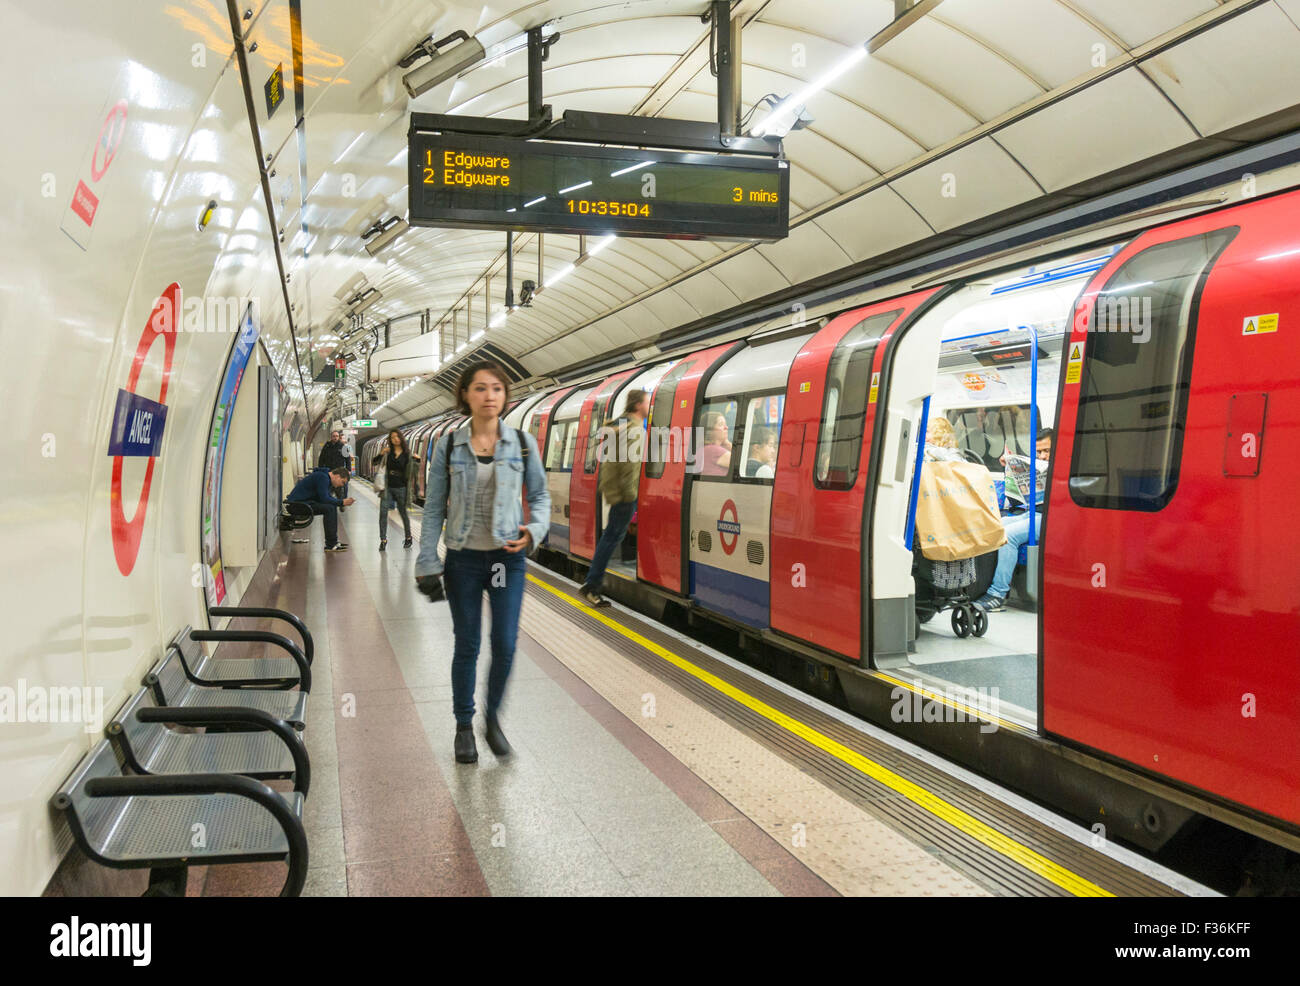 Commuters after getting off a stationary tube train at a London underground station platform London England UK Gb - Stock Image